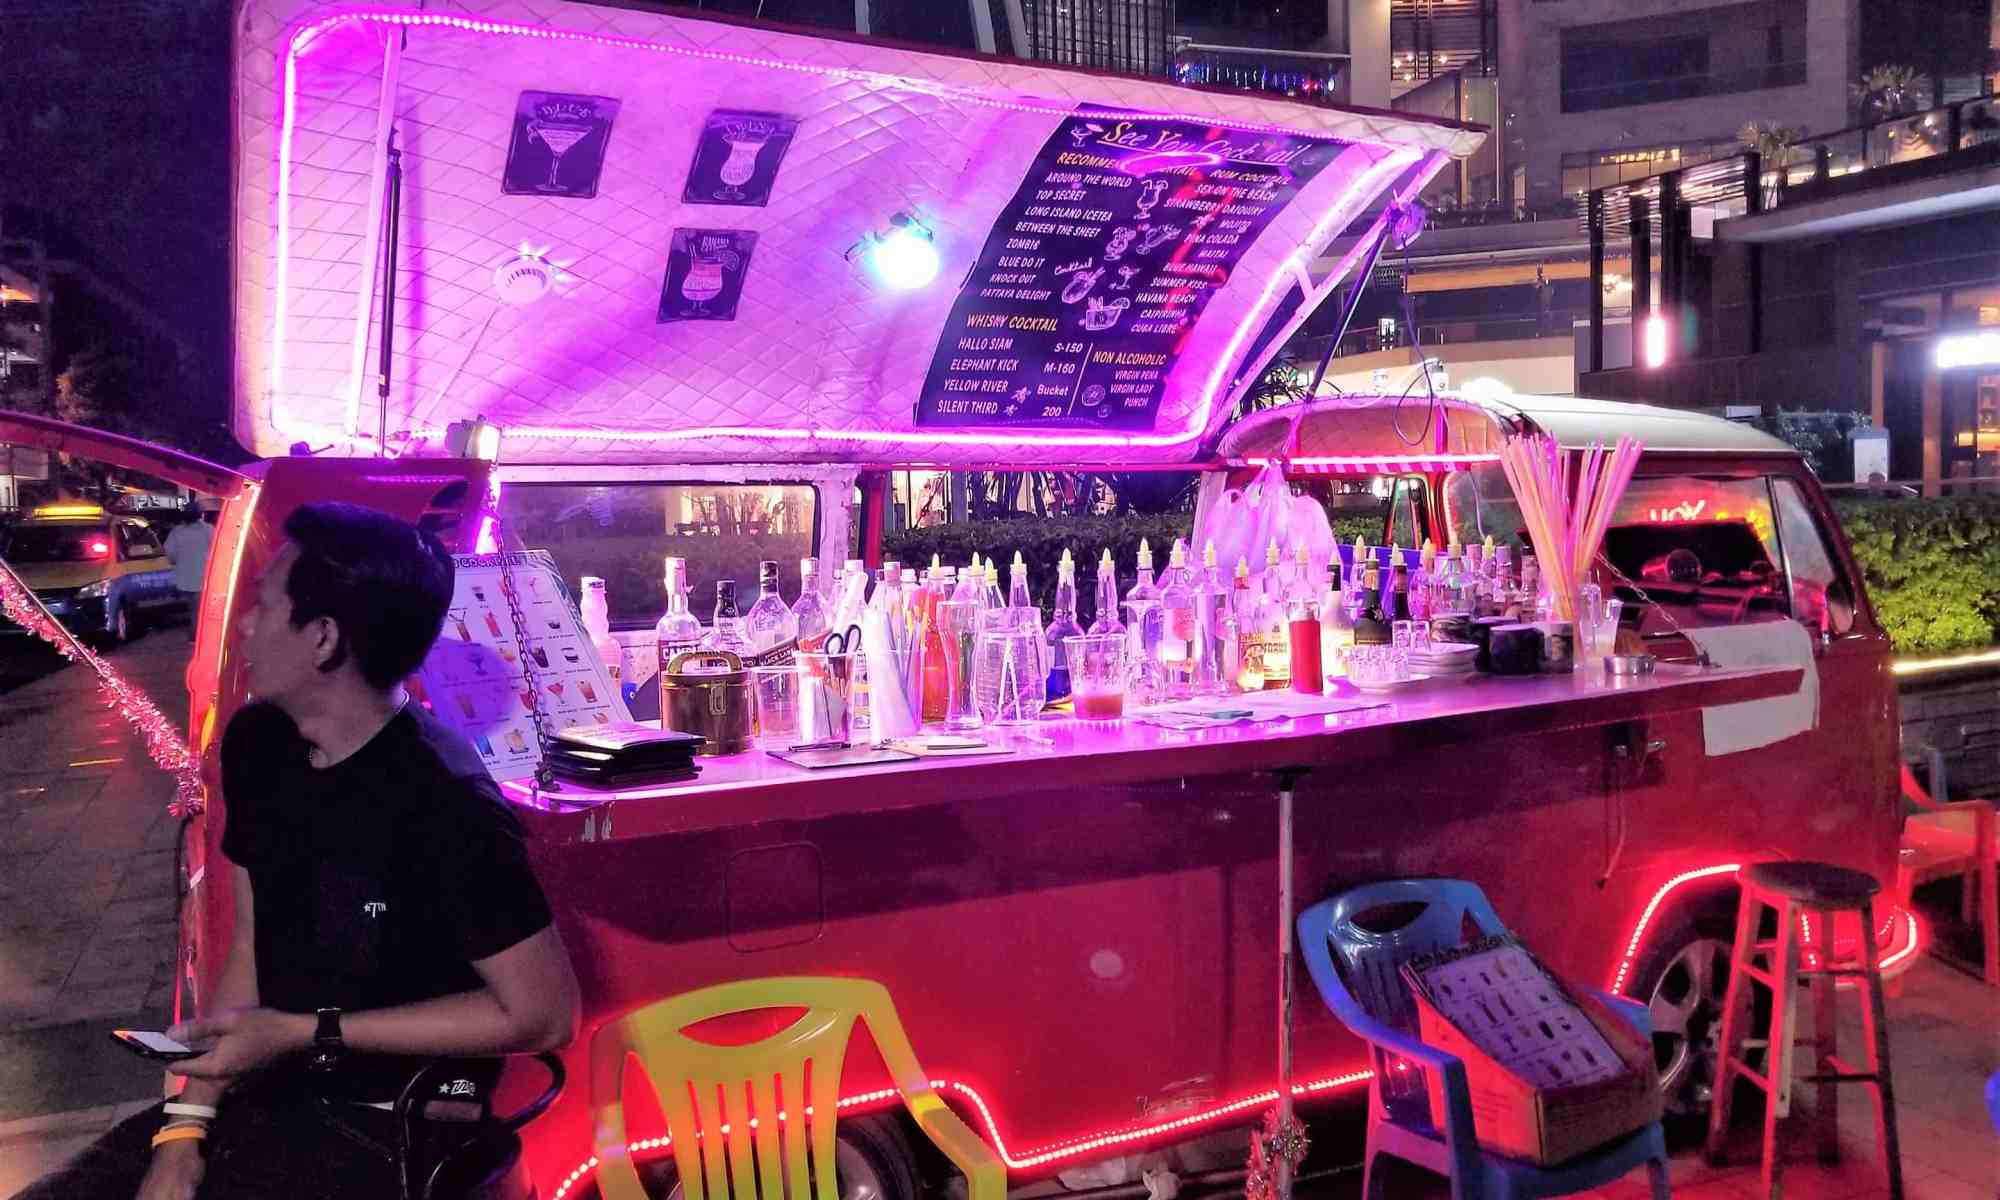 image-of-pattaya-thailand-cocktail-car-outside-shopping-mall